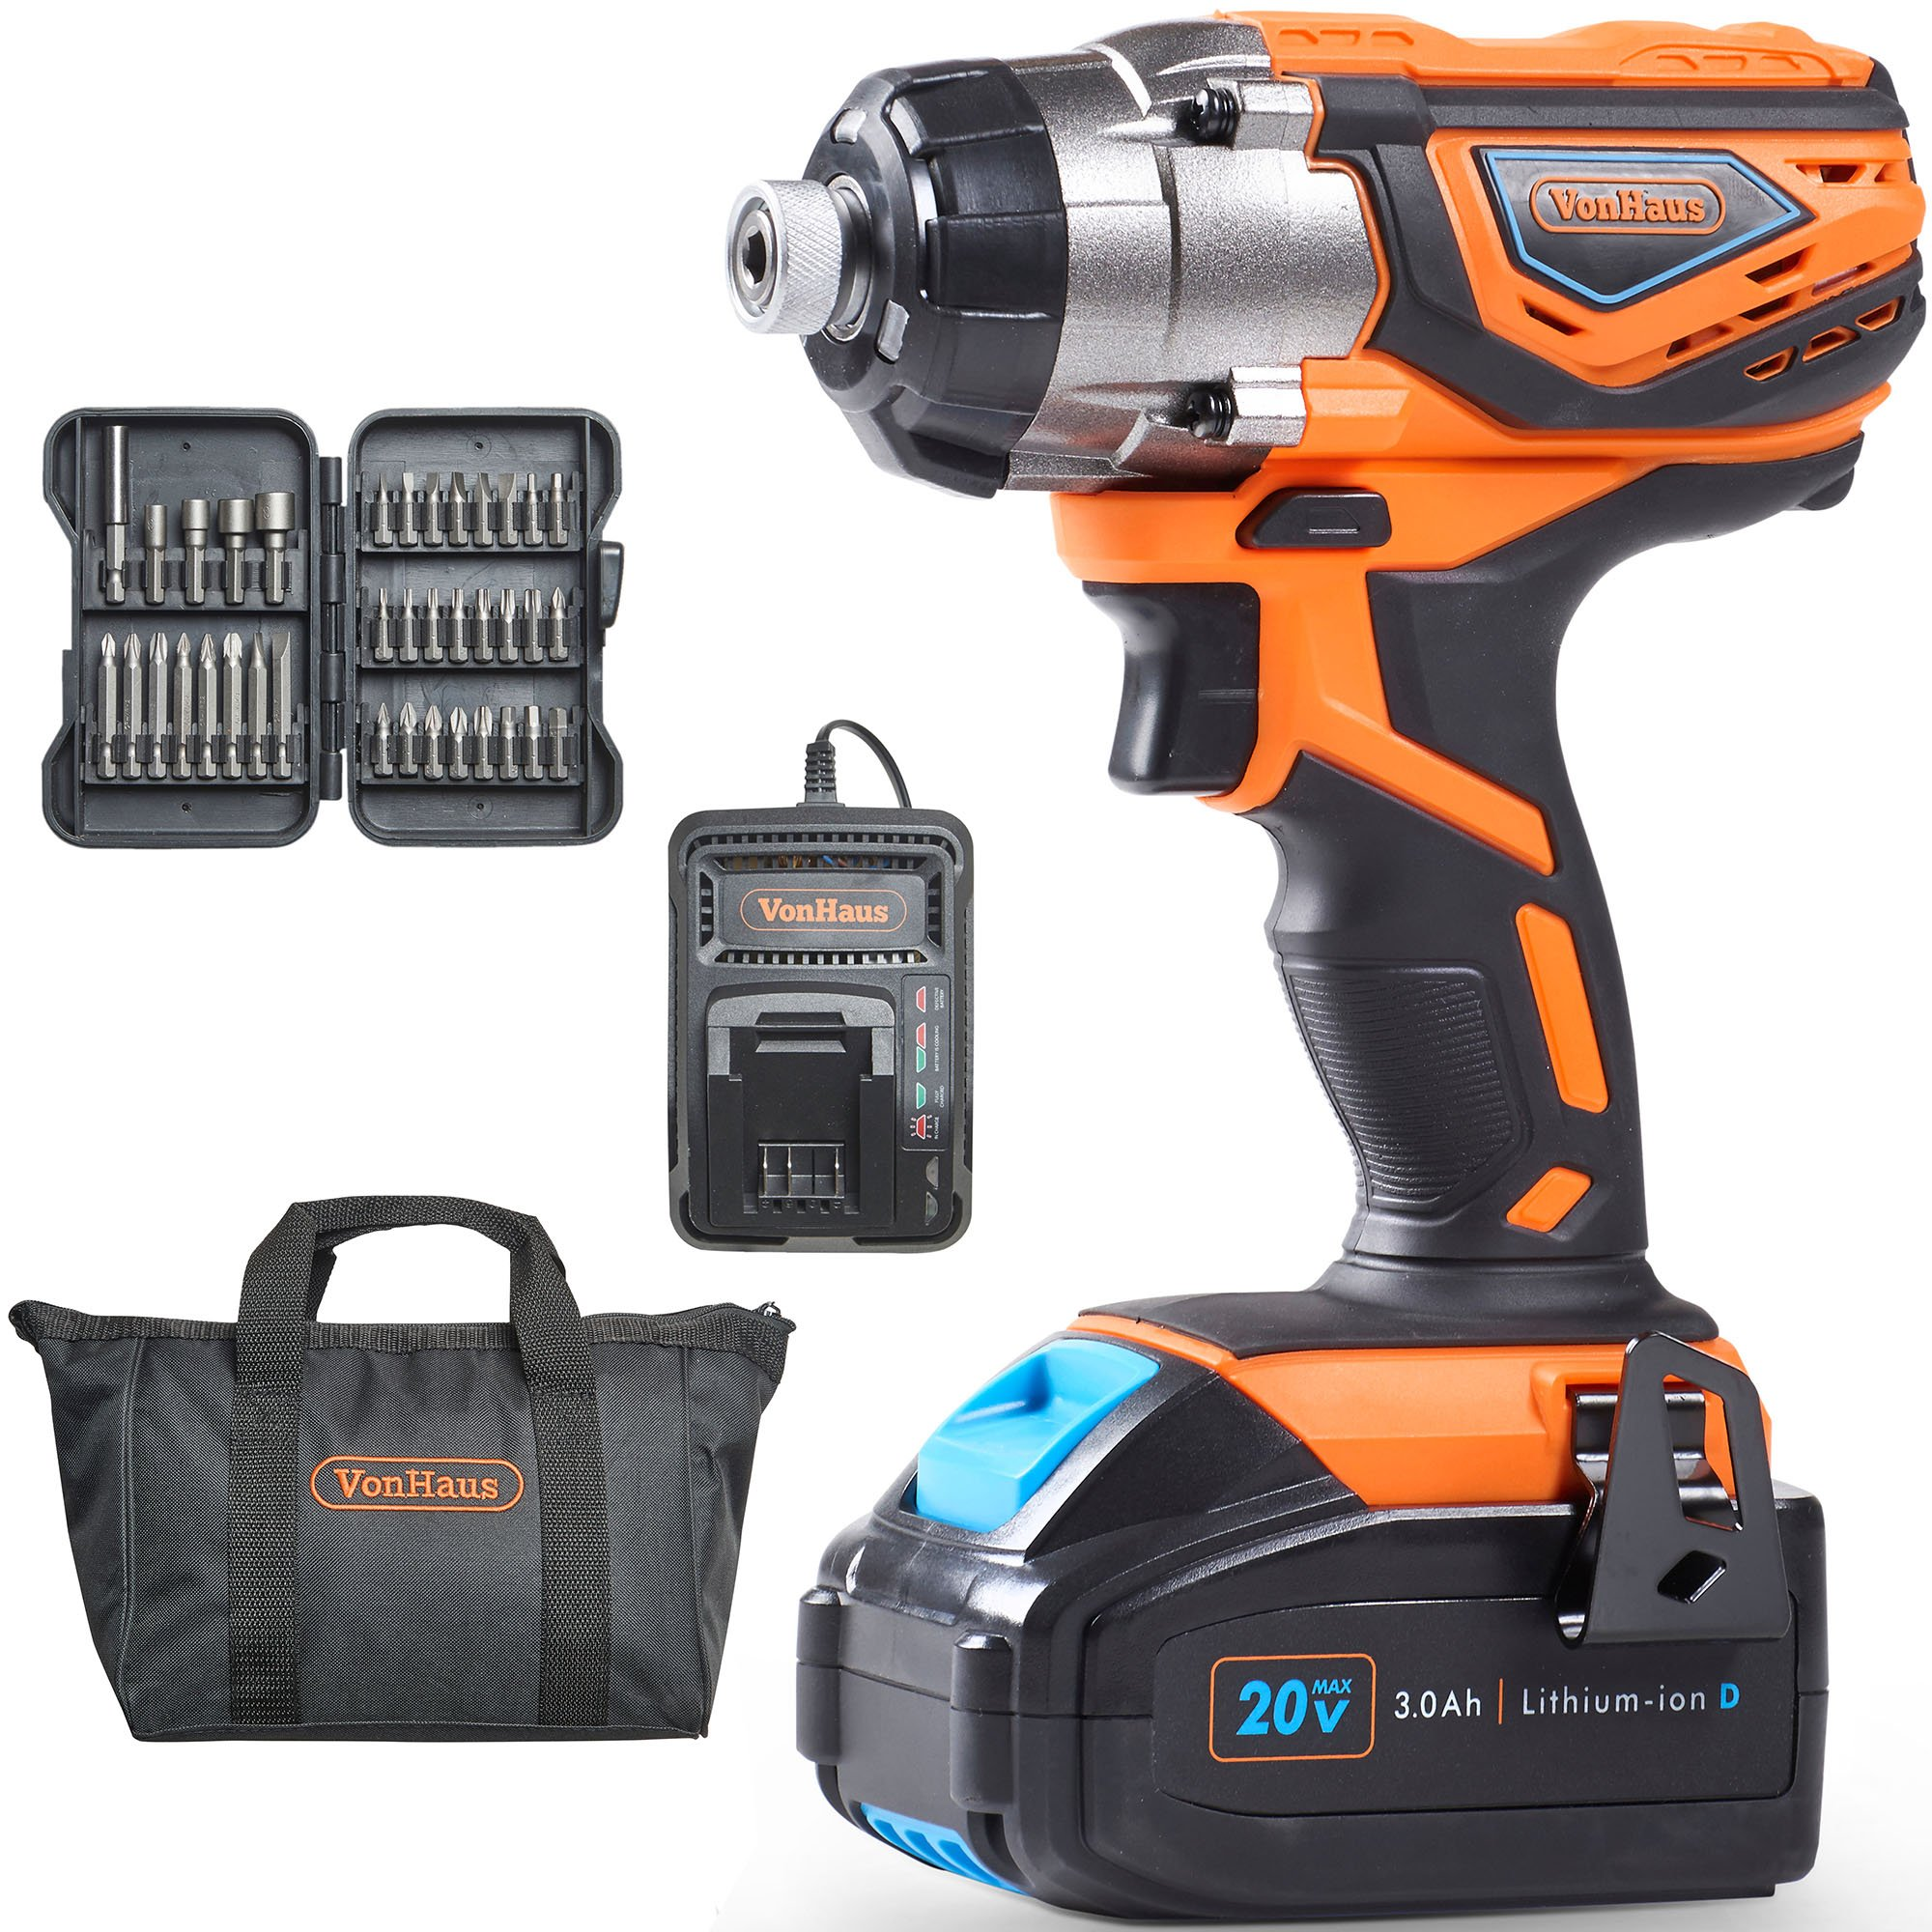 VonHaus 20V MAX Lithium-Ion Cordless 1/4'' Impact Driver with 3000 RPM Variable Speed, LED light and 37pc Driver Bit Set - 3.0Ah Battery and Charger Kit Included